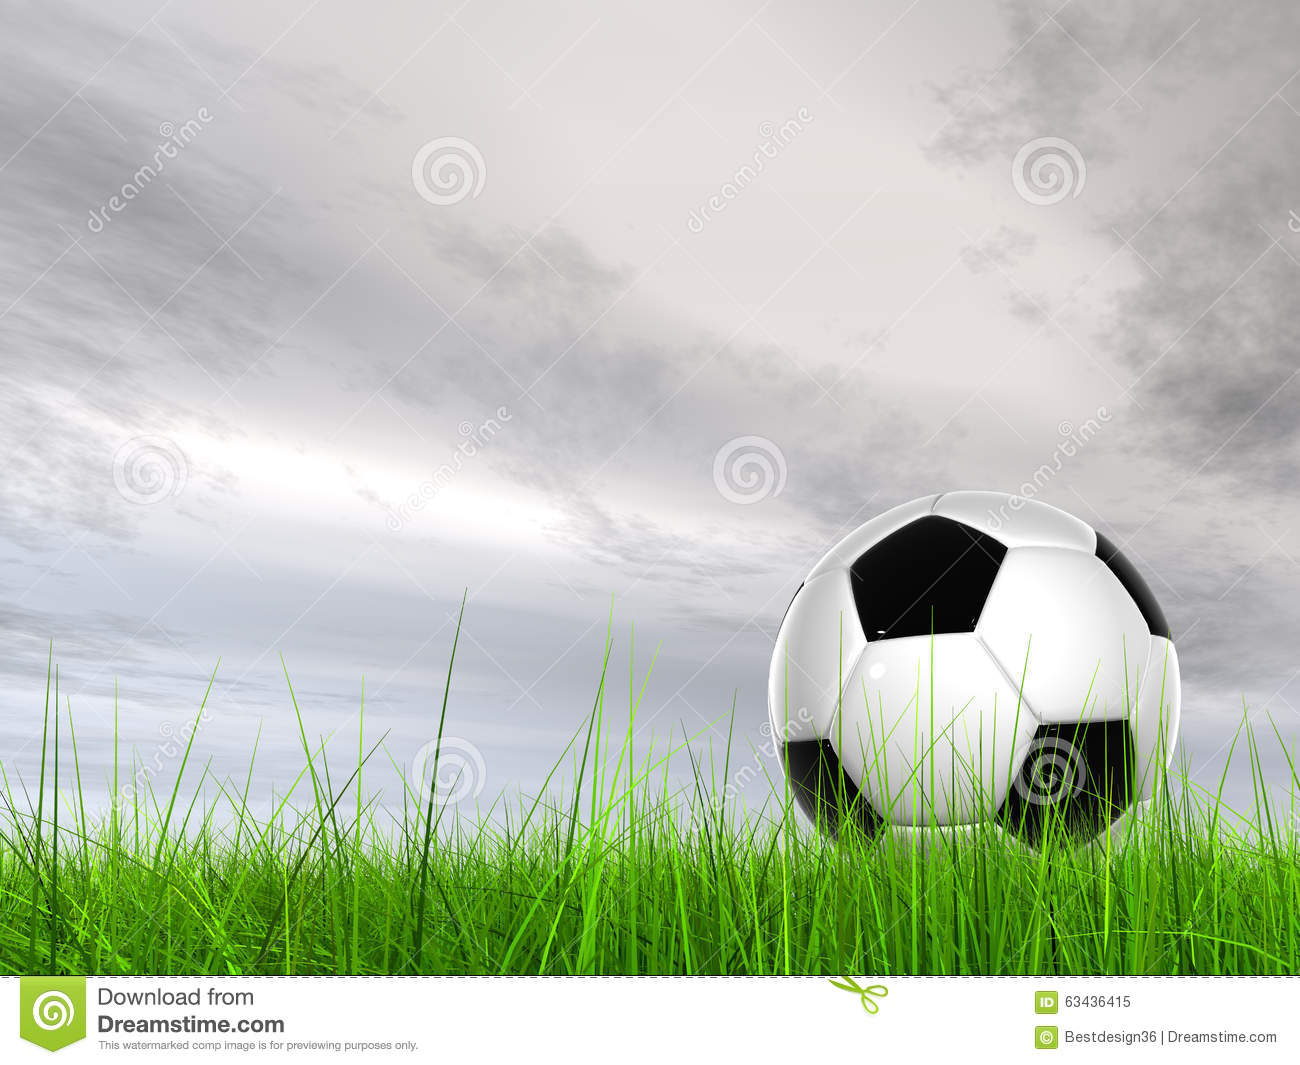 Soccer Football On Green Field With Blue Sky Background: Conceptual 3D Soccer Ball In Field Grass With A Sky